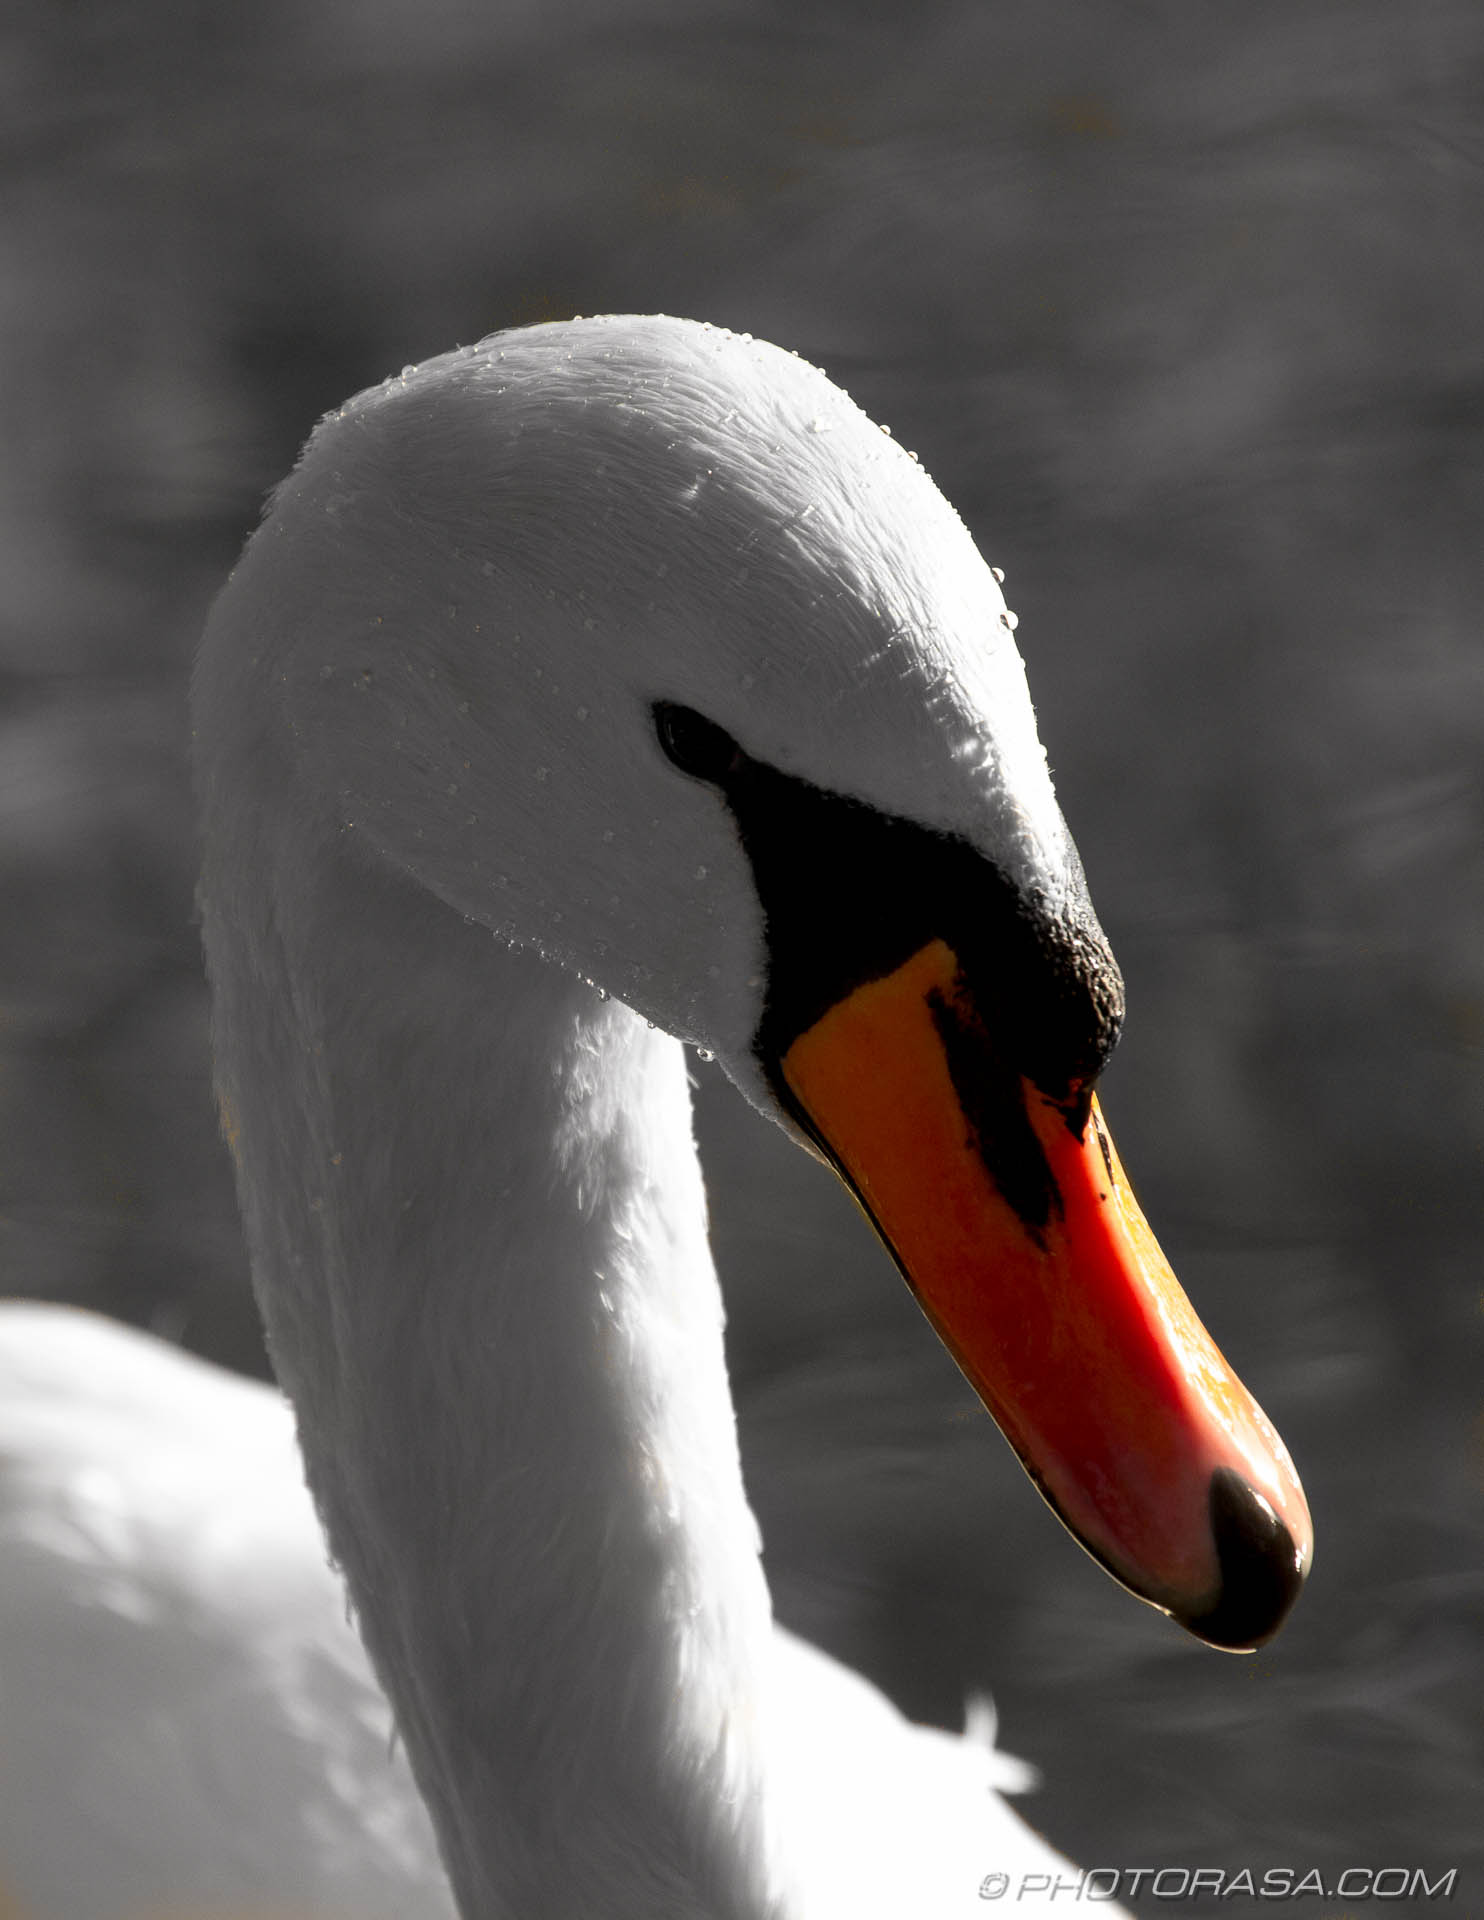 https://photorasa.com/art-swans/swan-orange-beak/